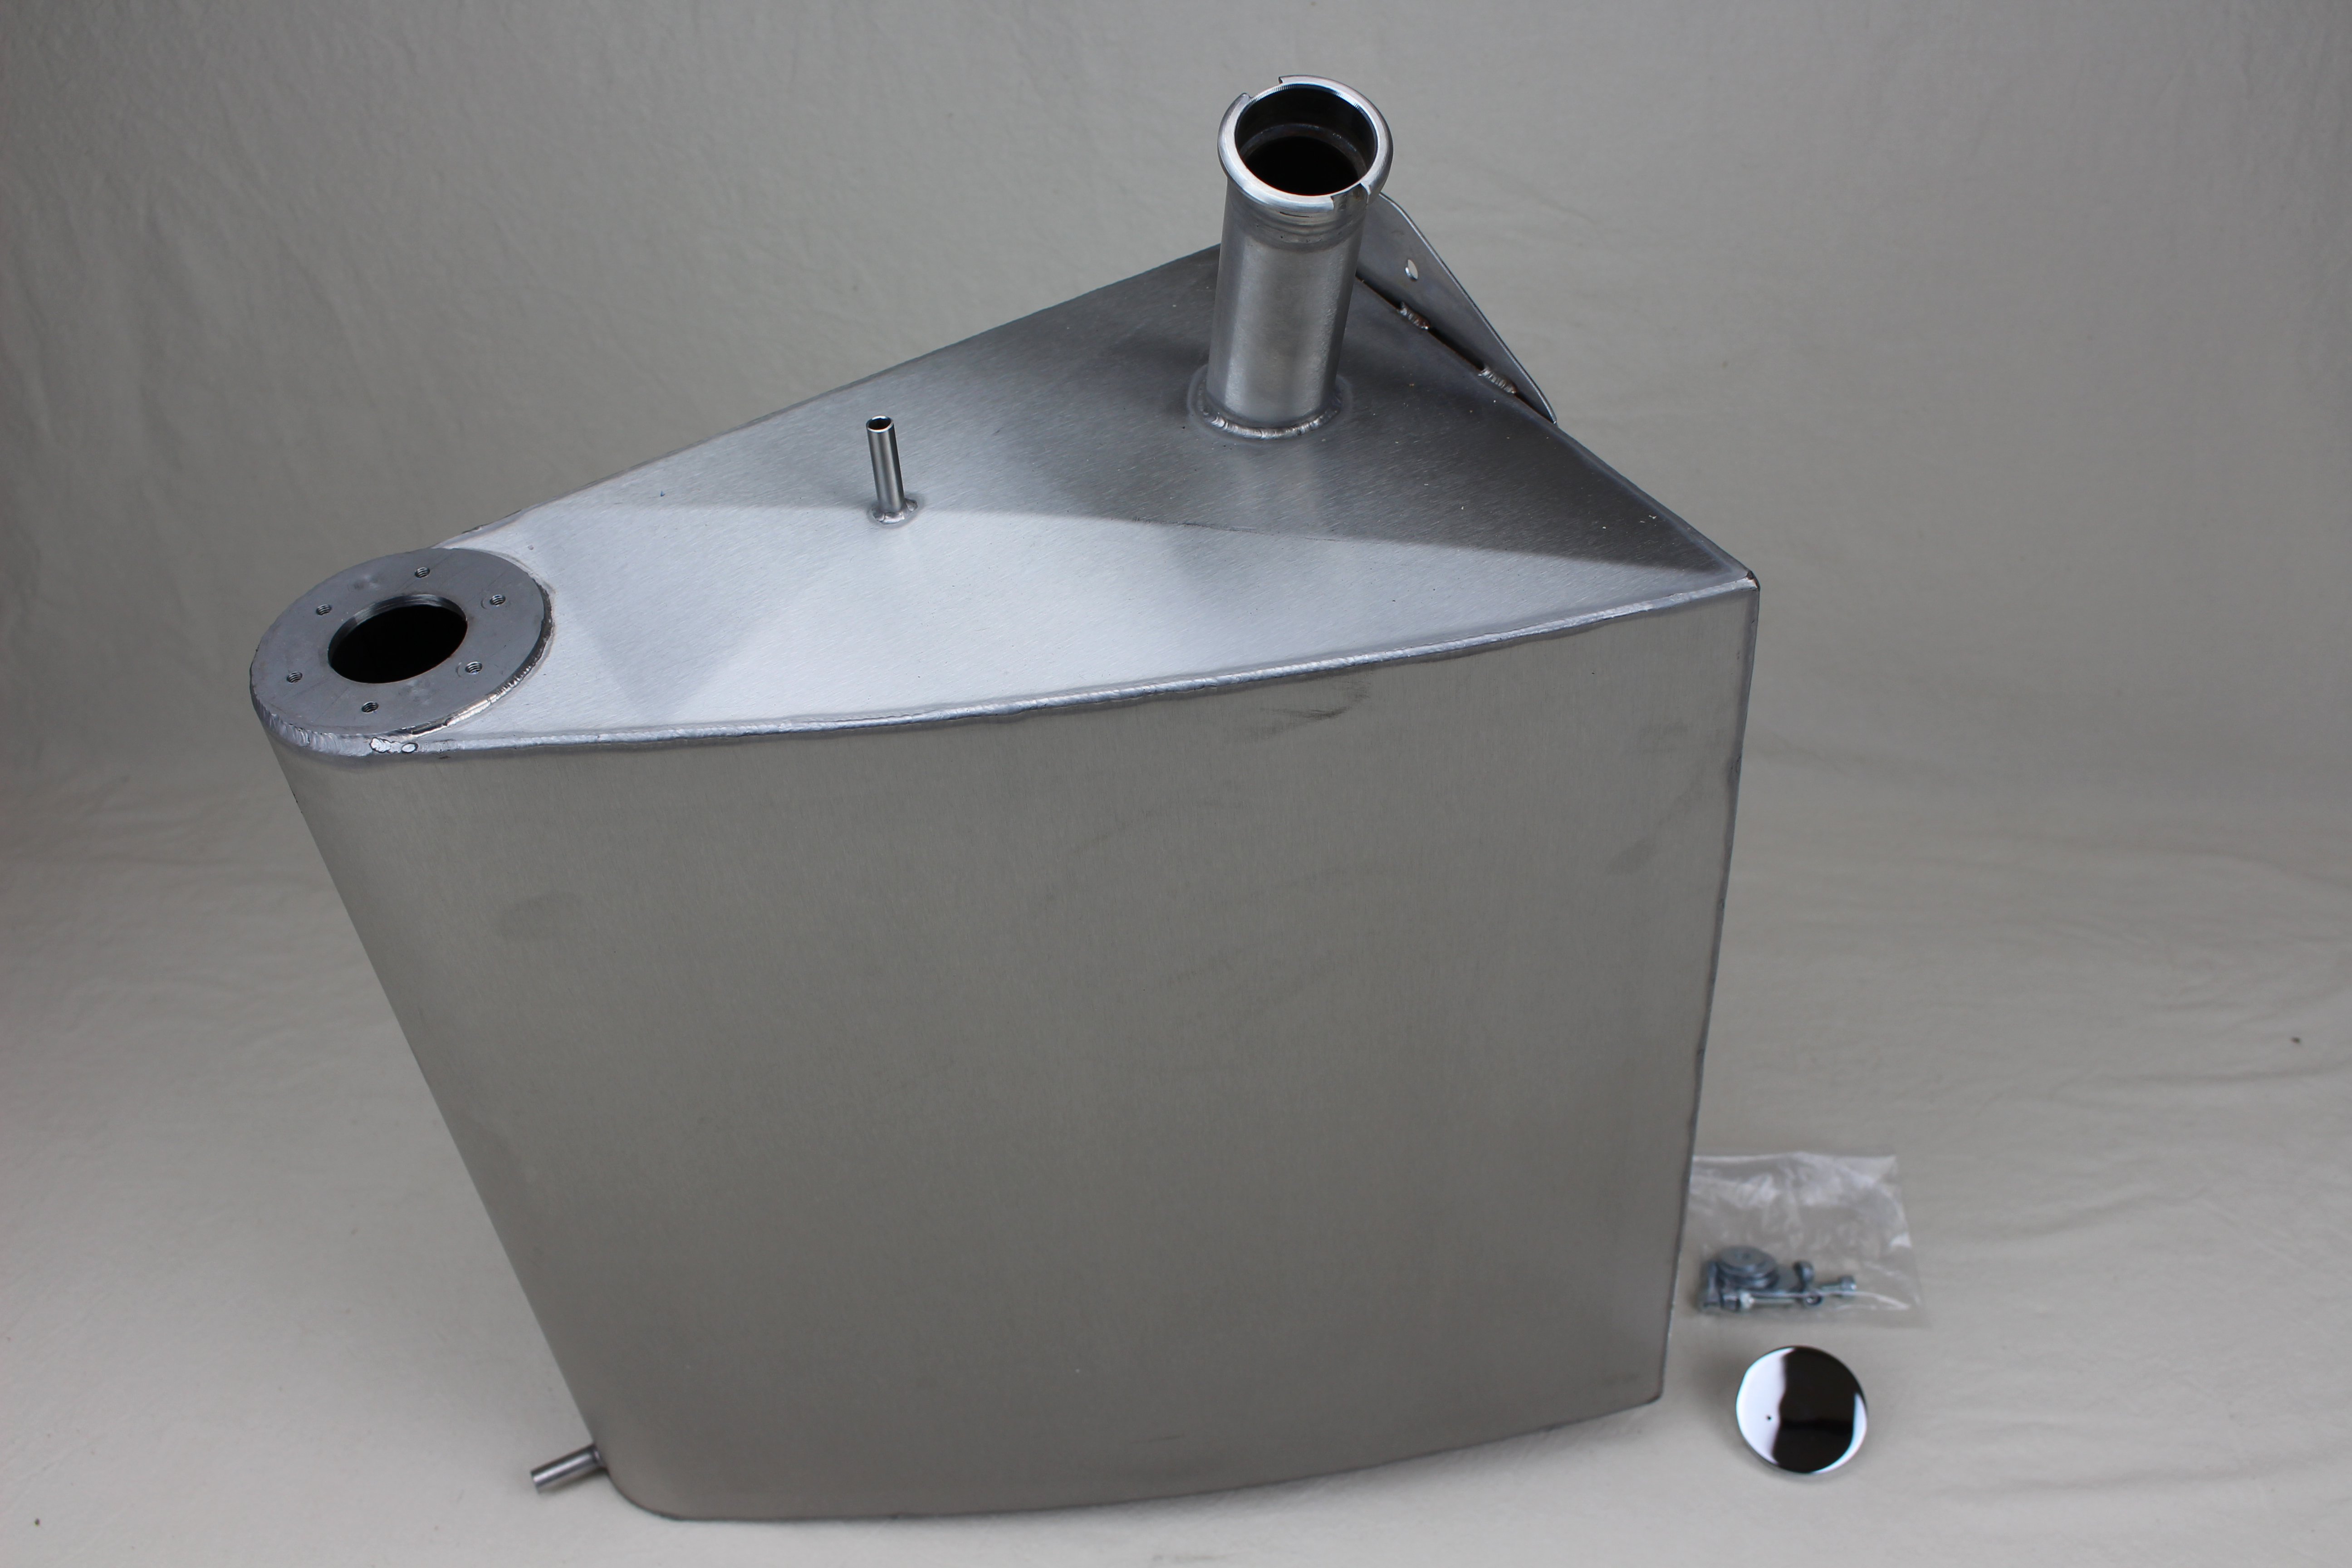 Fuel tank, Stainless steel, 27 Litre capacity, Adaptable for all Triking models.